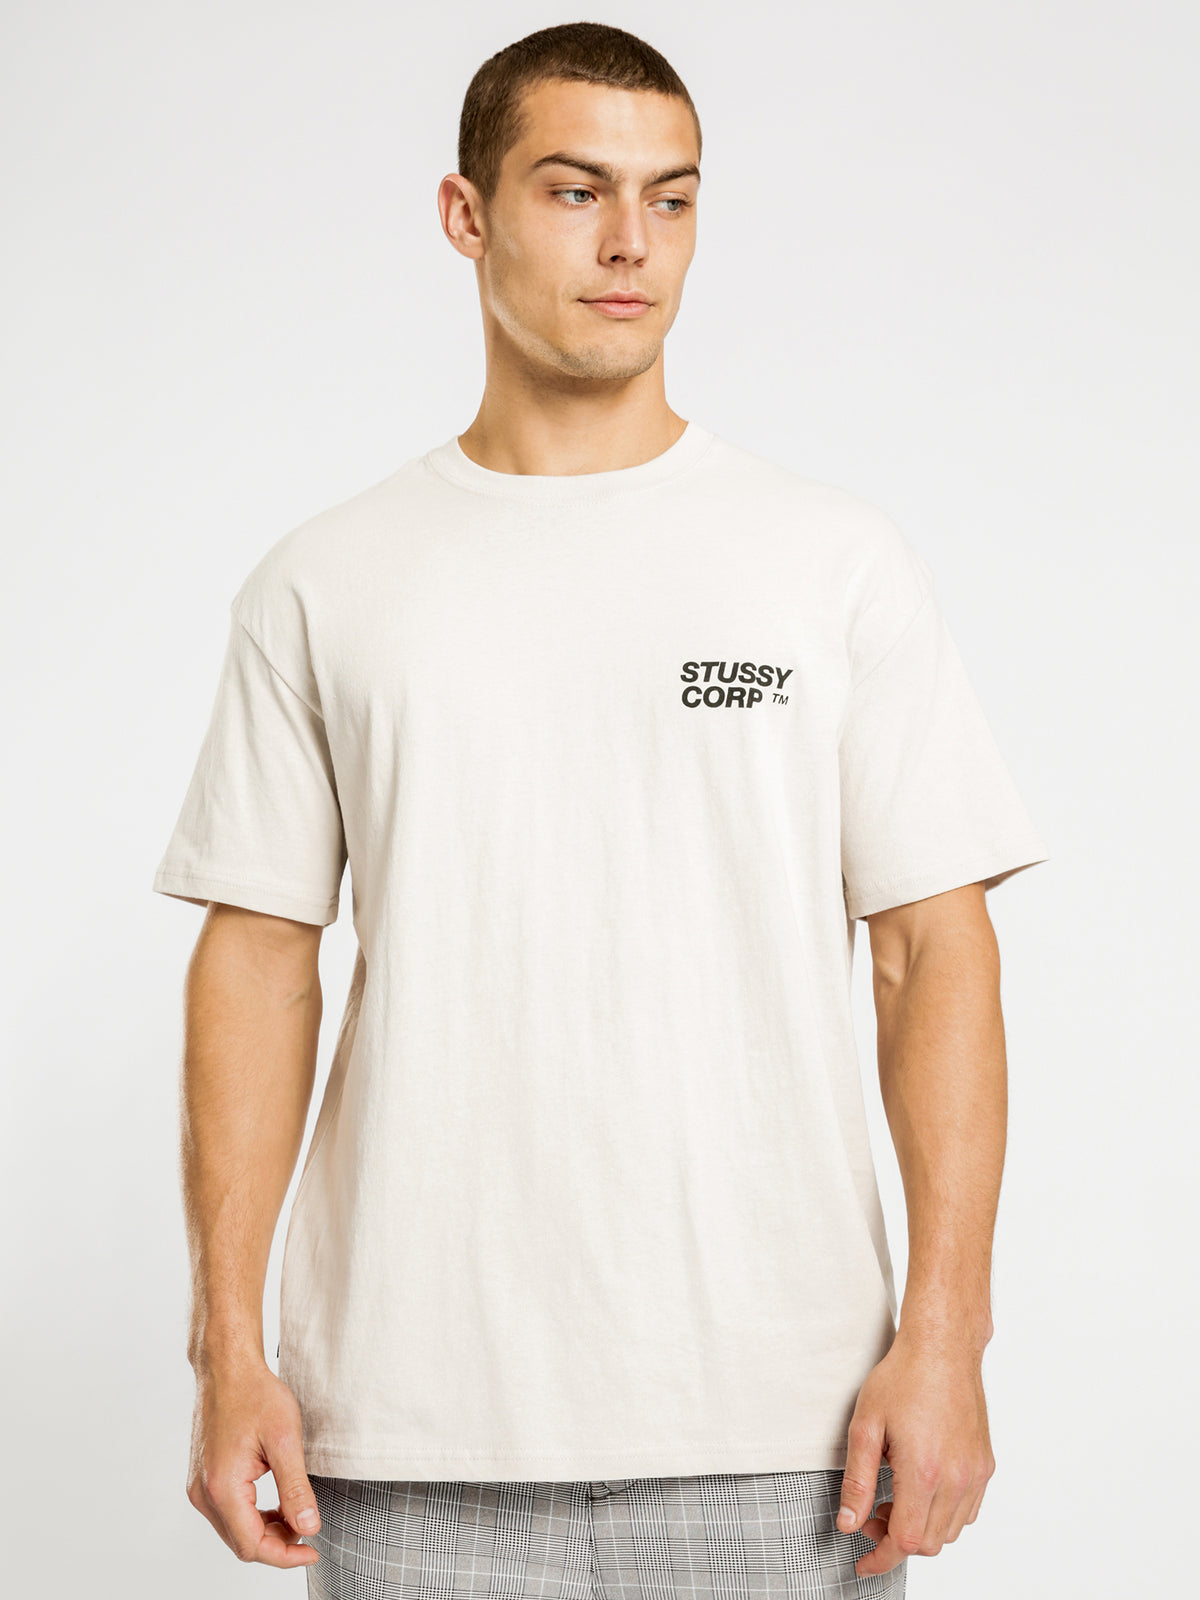 Corp Short Sleeve T-Shirt in White Sand